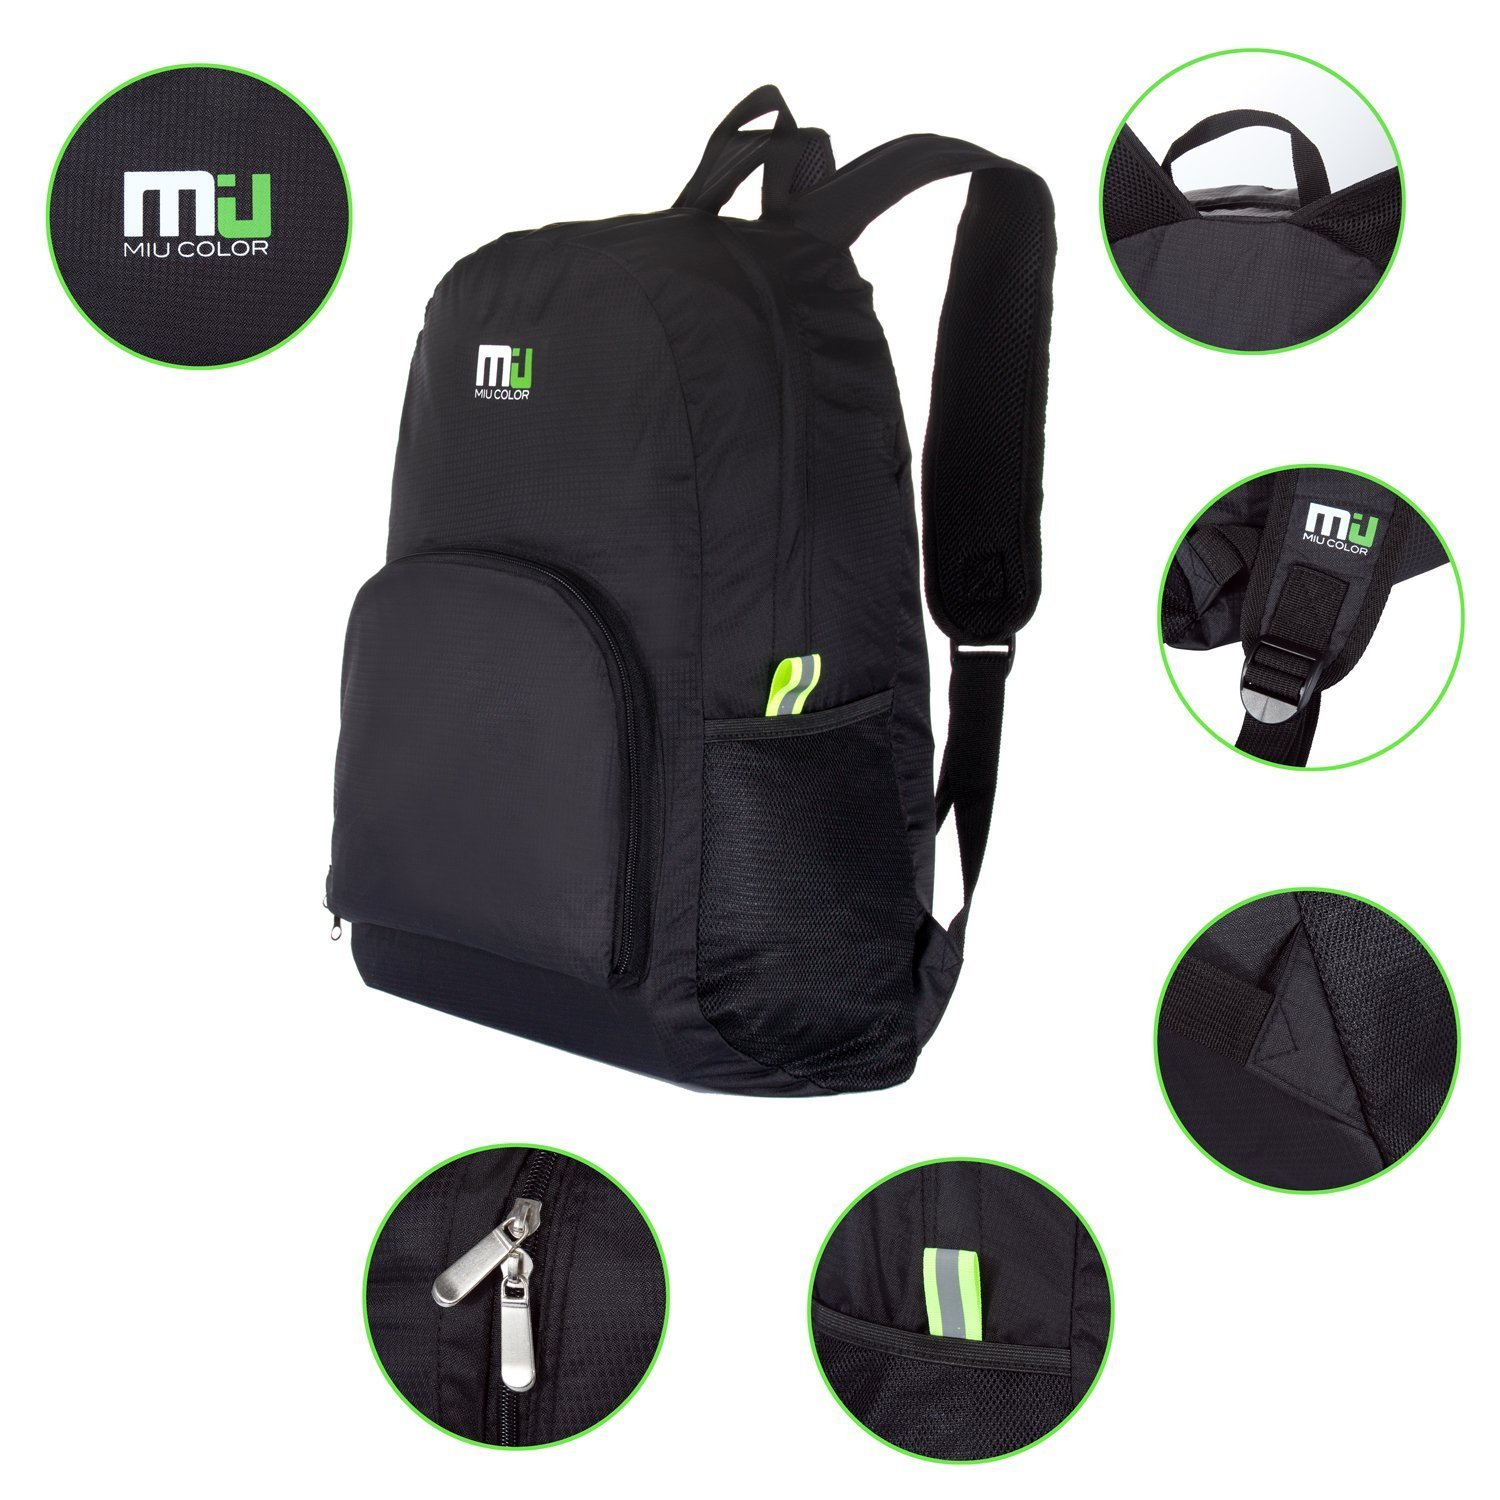 6e2c41b46c Amazon.com  MIU COLOR Foldable and Durable Lightweight Backpack ...